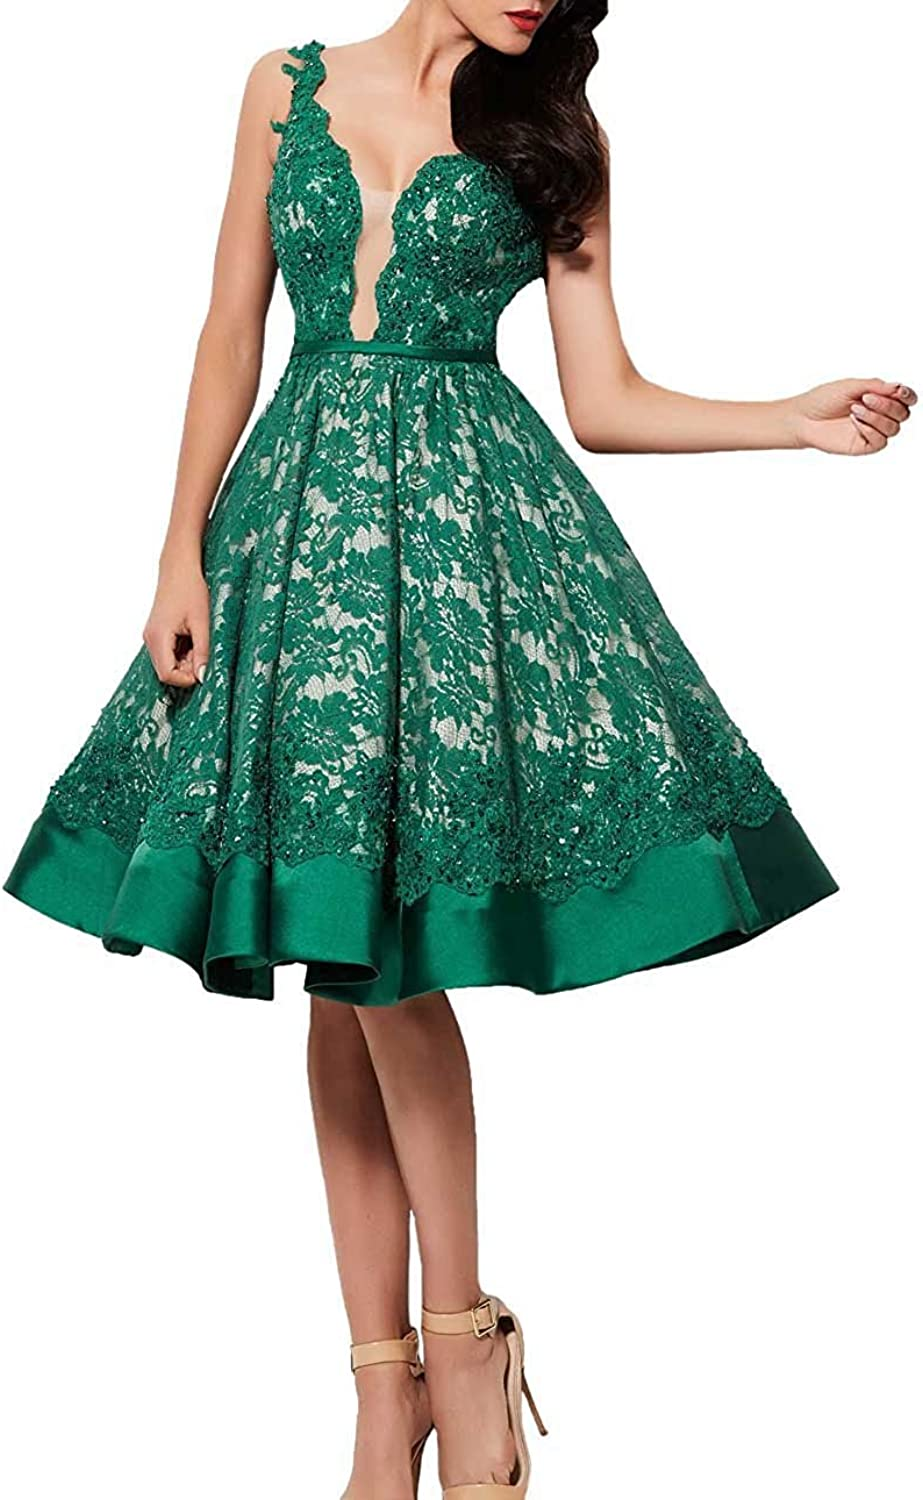 Sound of blossoming Sob Lace V Neck Homecoming Dresses Short Backless Applique Prom